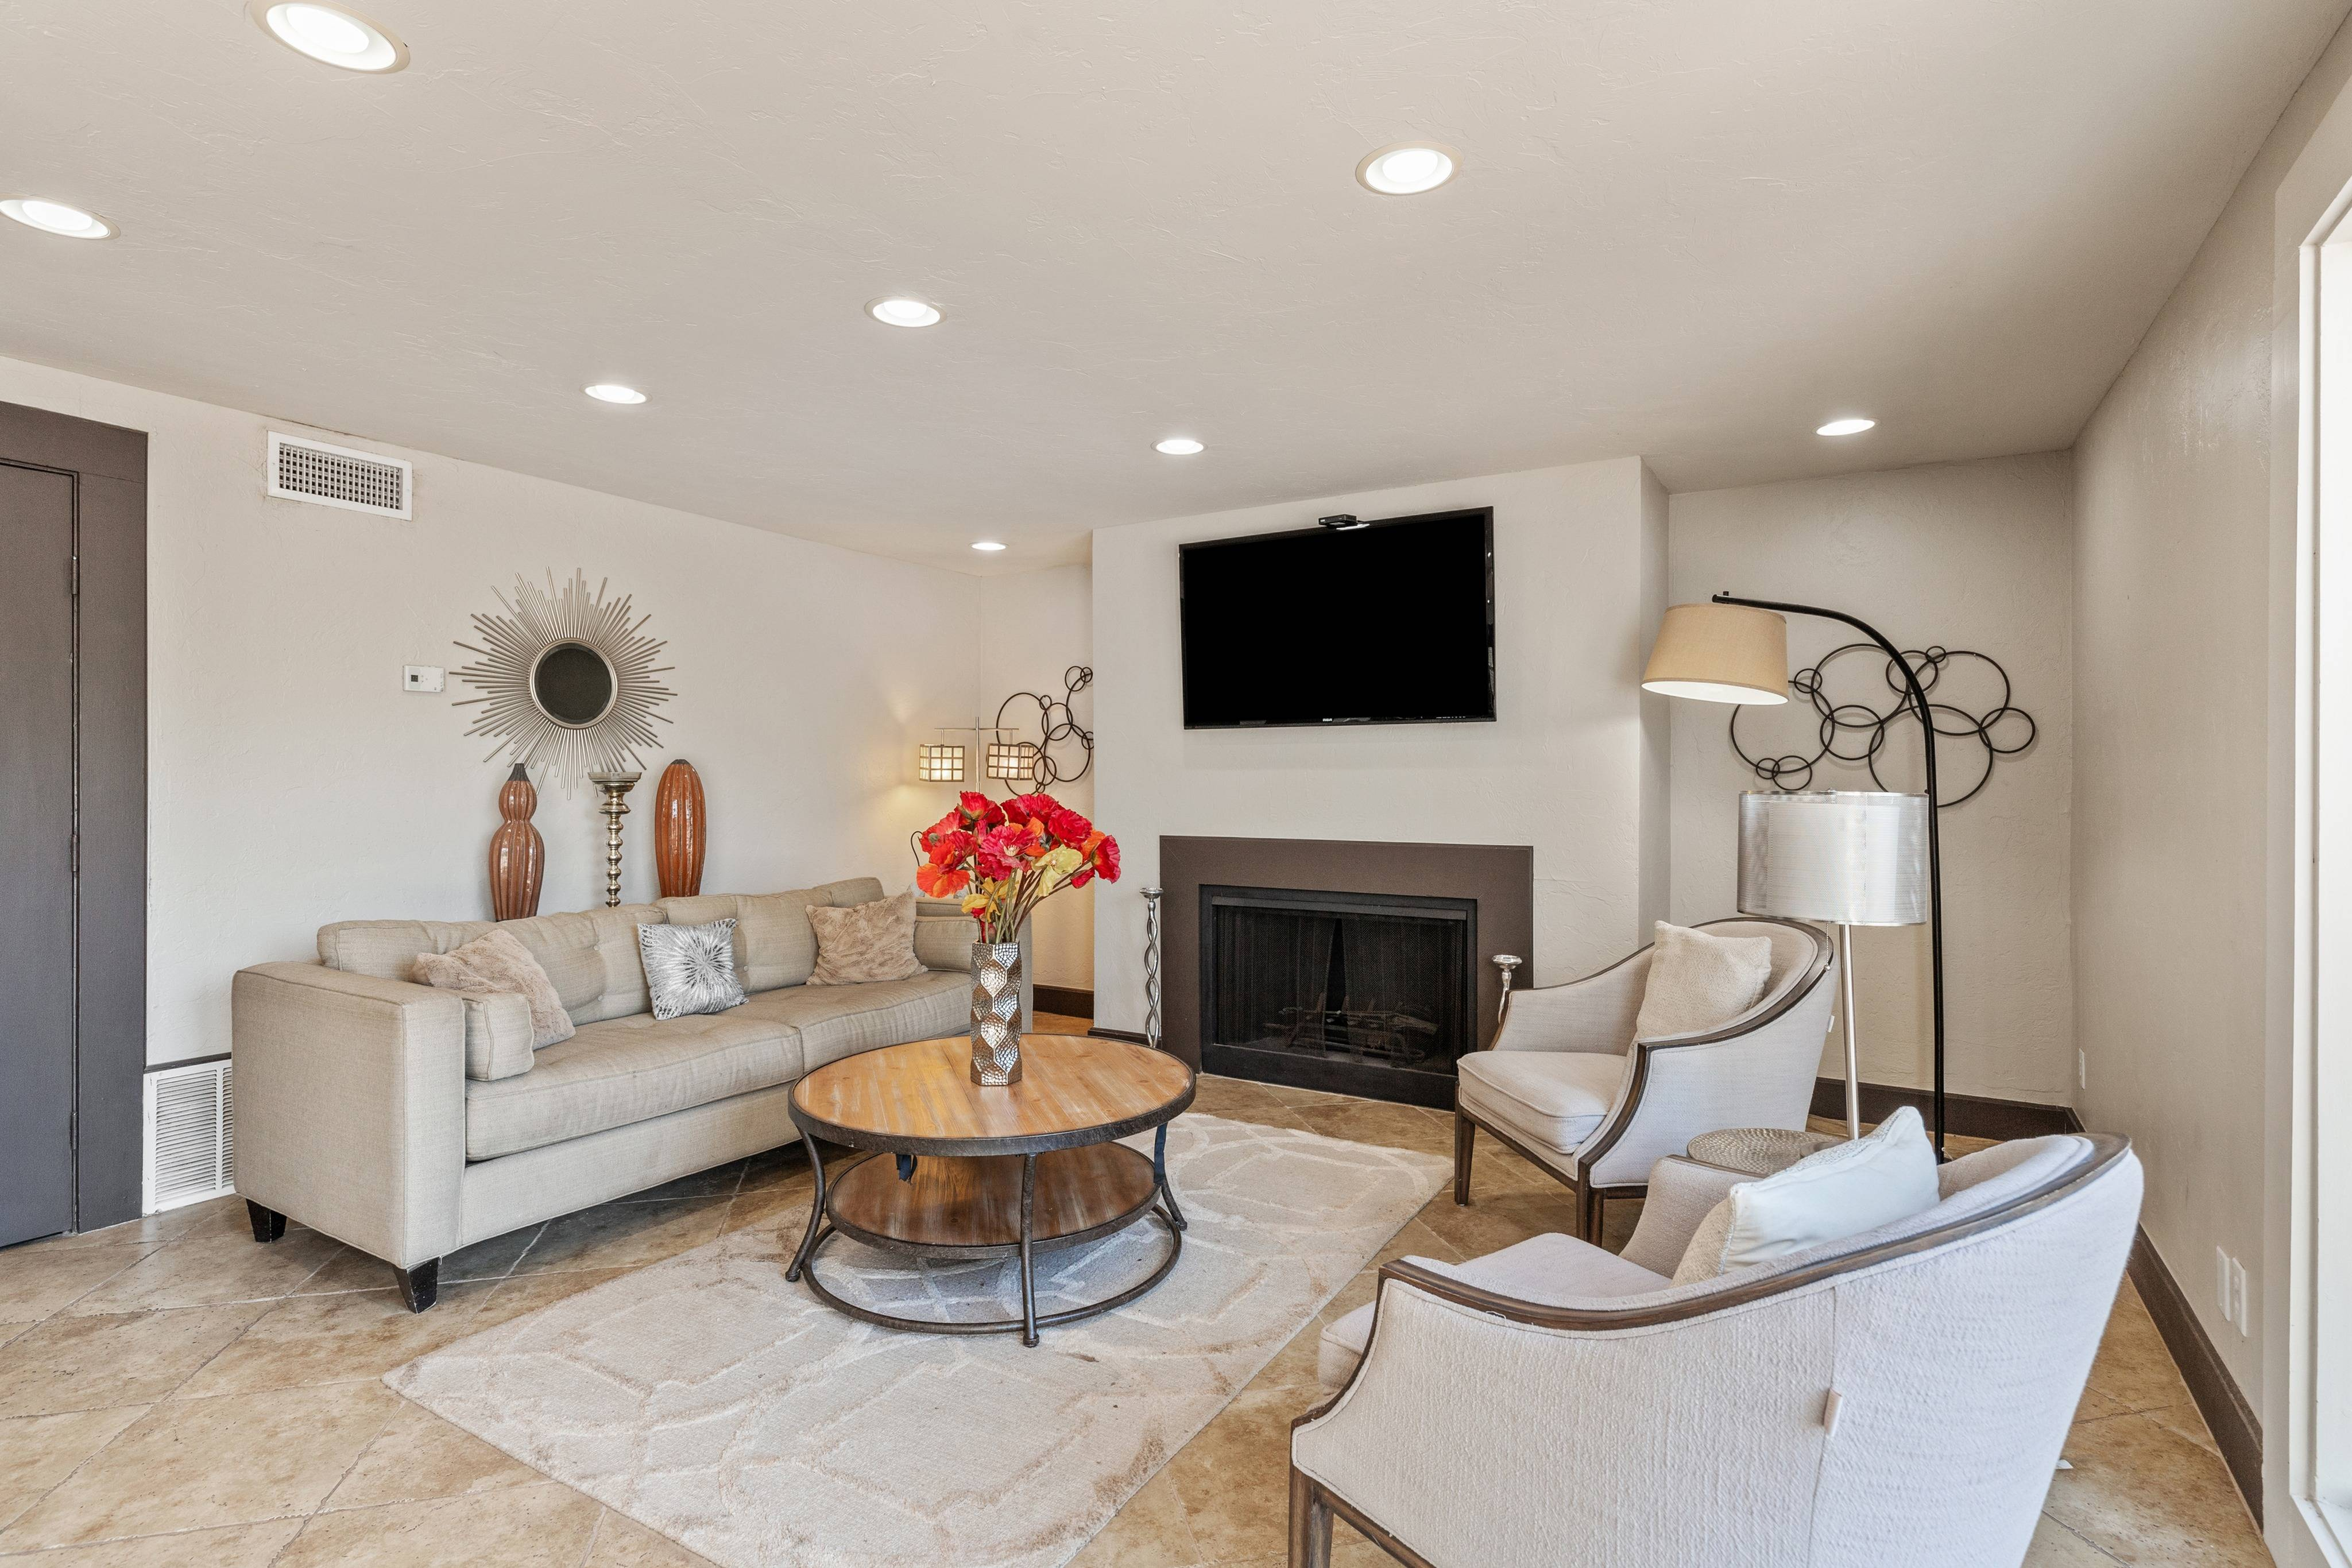 Community Clubhouse Seating Area with Fireplace and TV